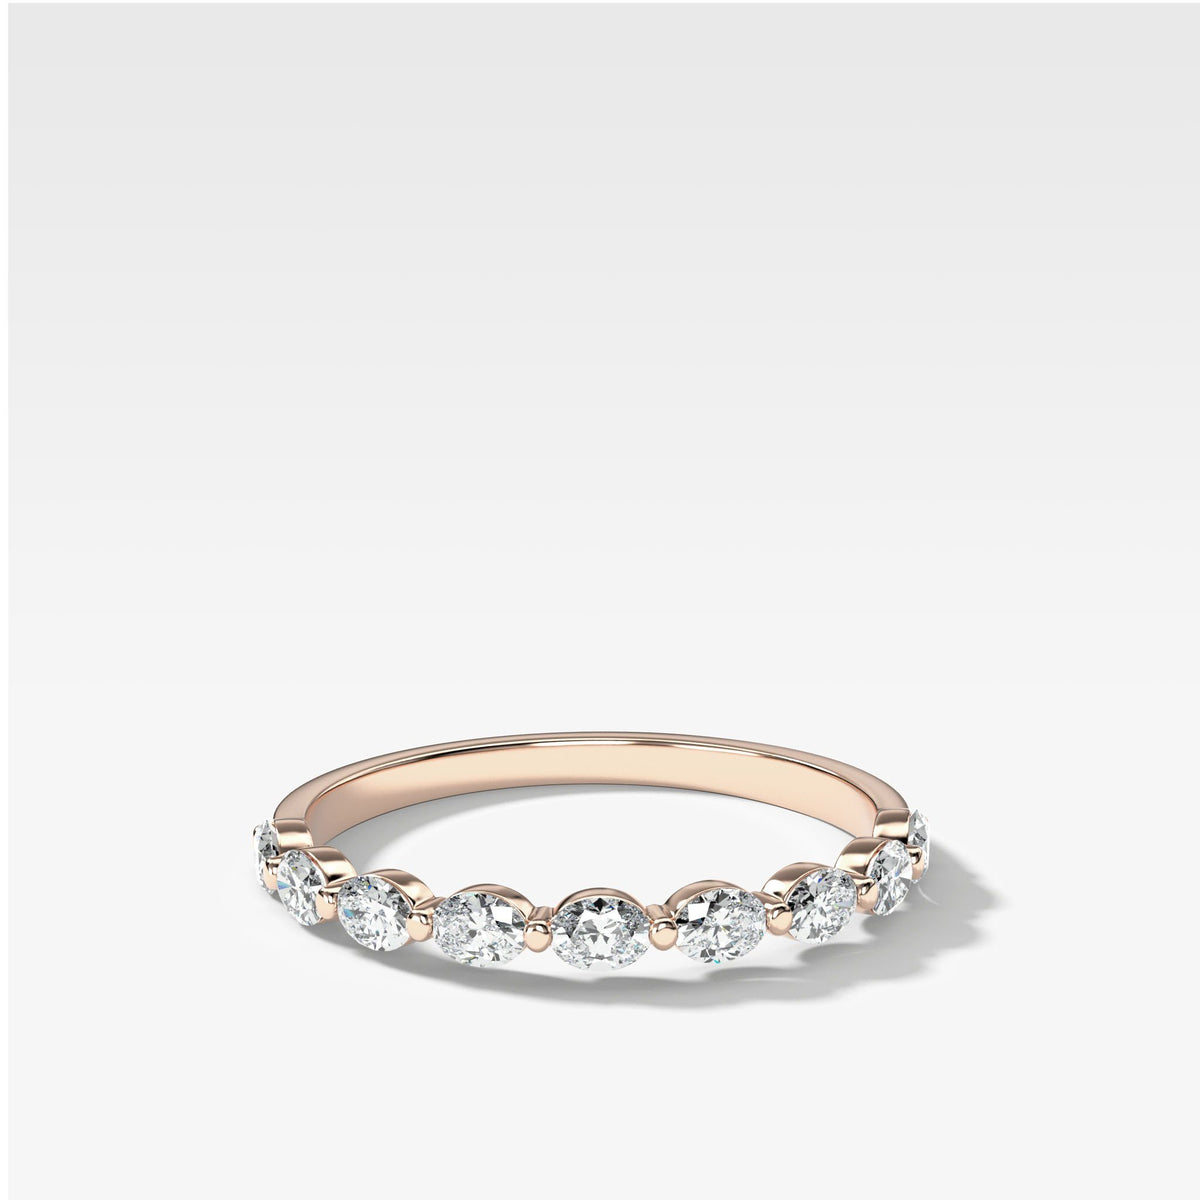 Oval Interstellar Wedding Band In Rose Gold By Good Stone